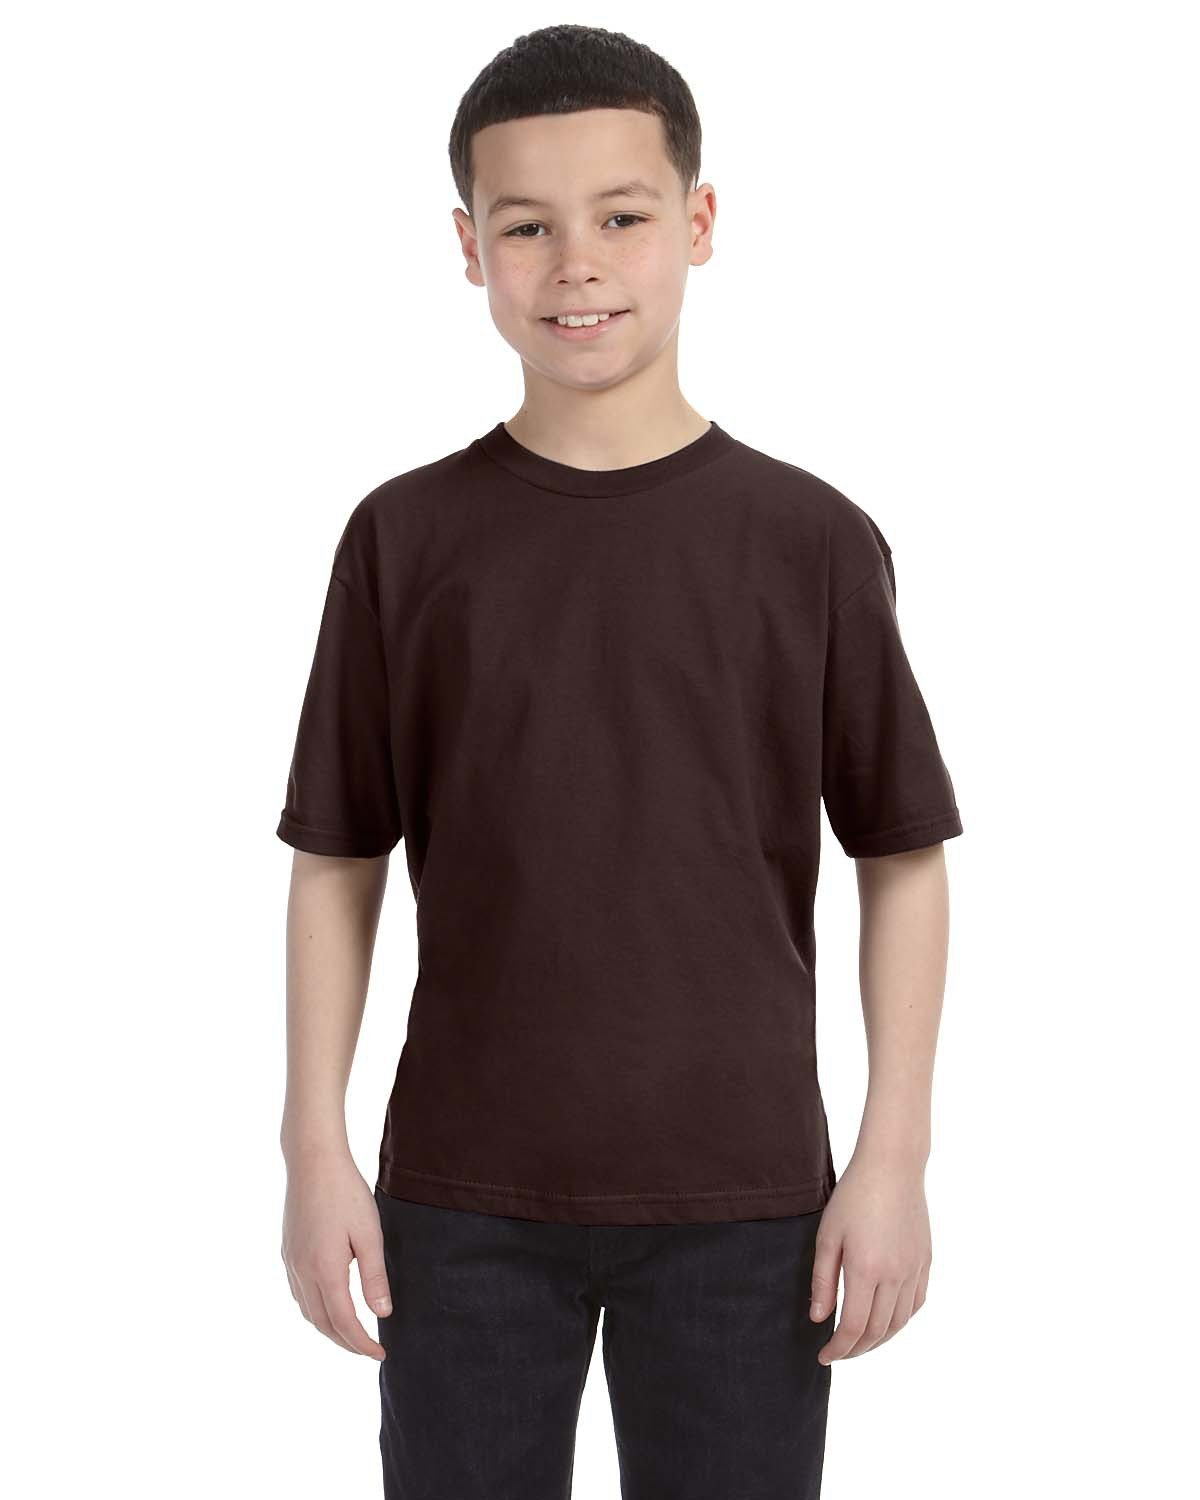 Anvil Youth Lightweight T-Shirt CHOCOLATE